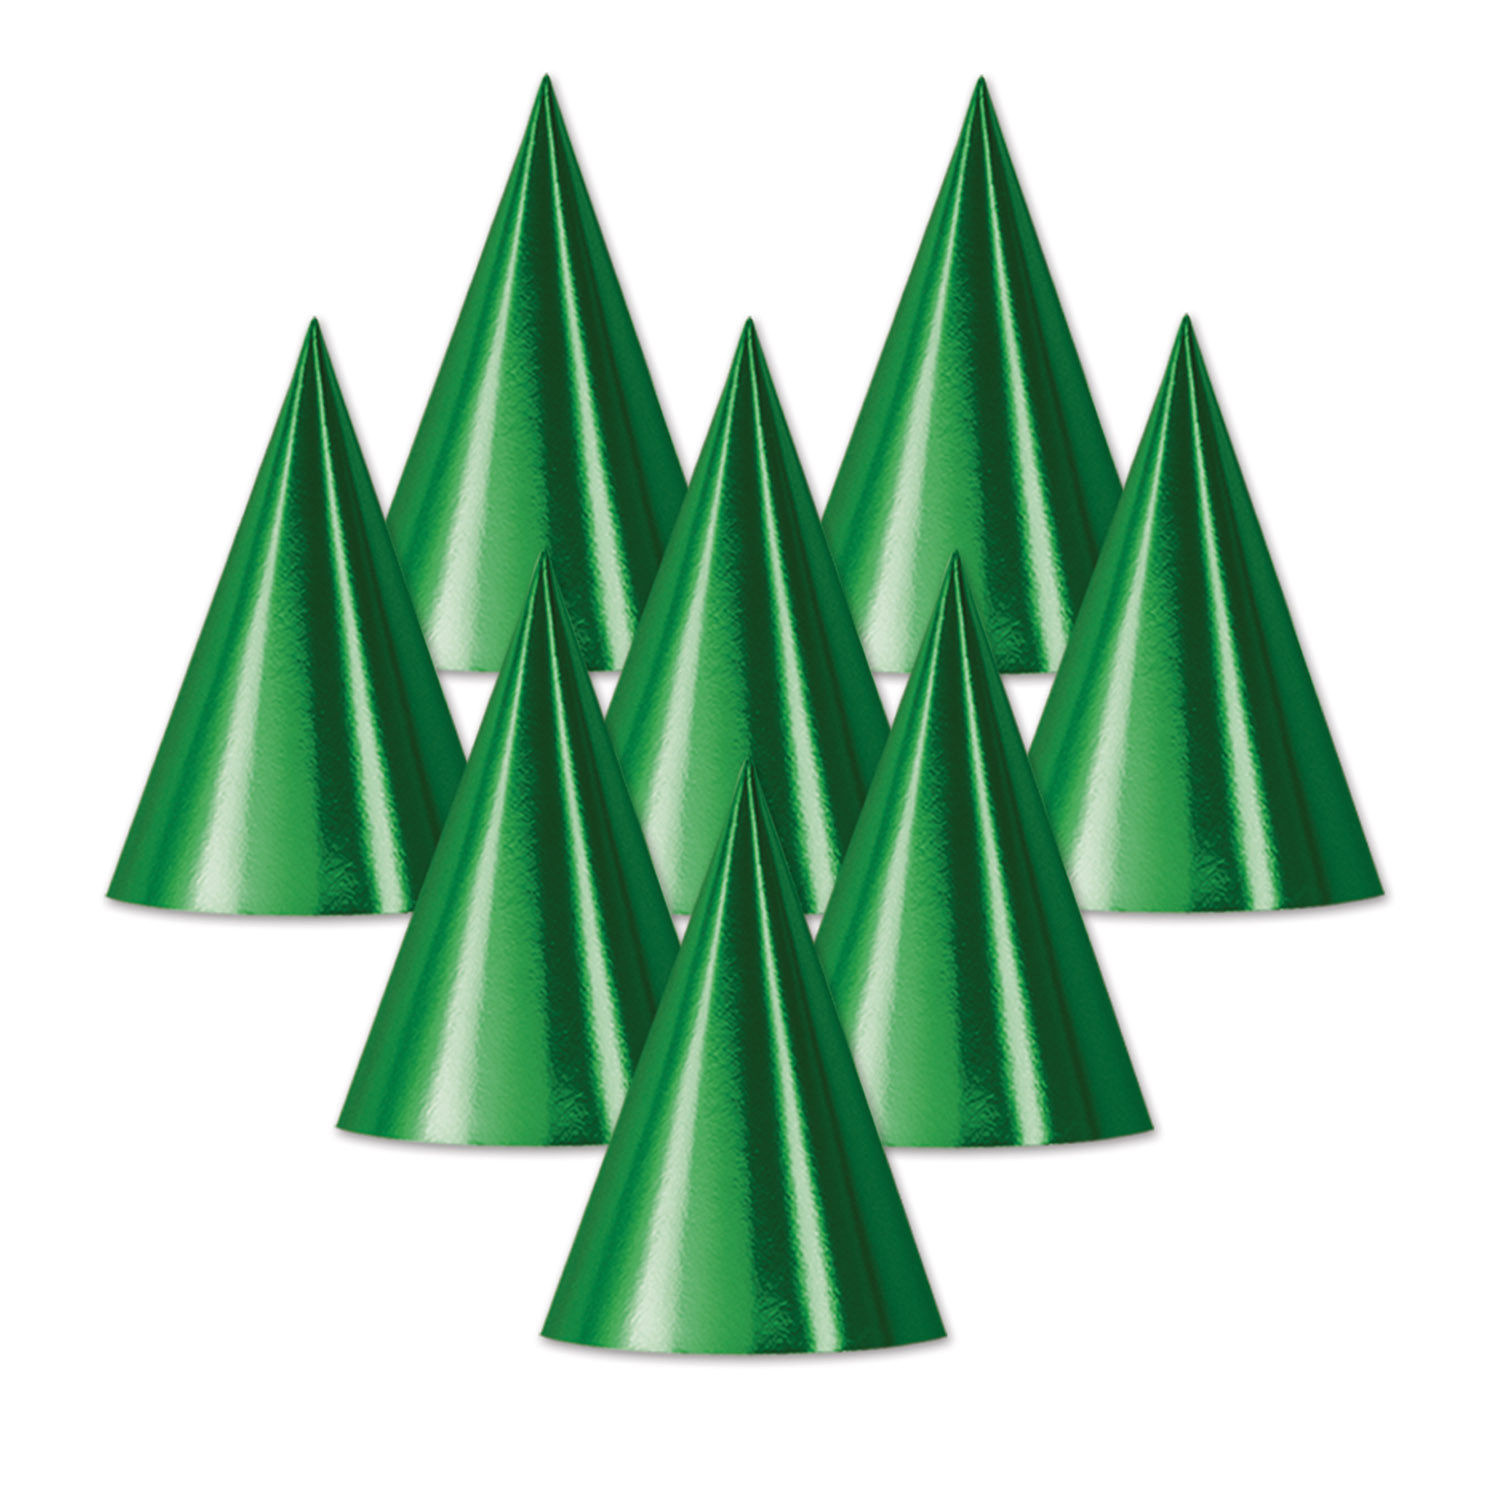 Foil Cone Hat (Pack of 48) Foil Cone Hat, st. patricks day, birthday, party favor, new years eve, wholesale, inexpensive, bulk